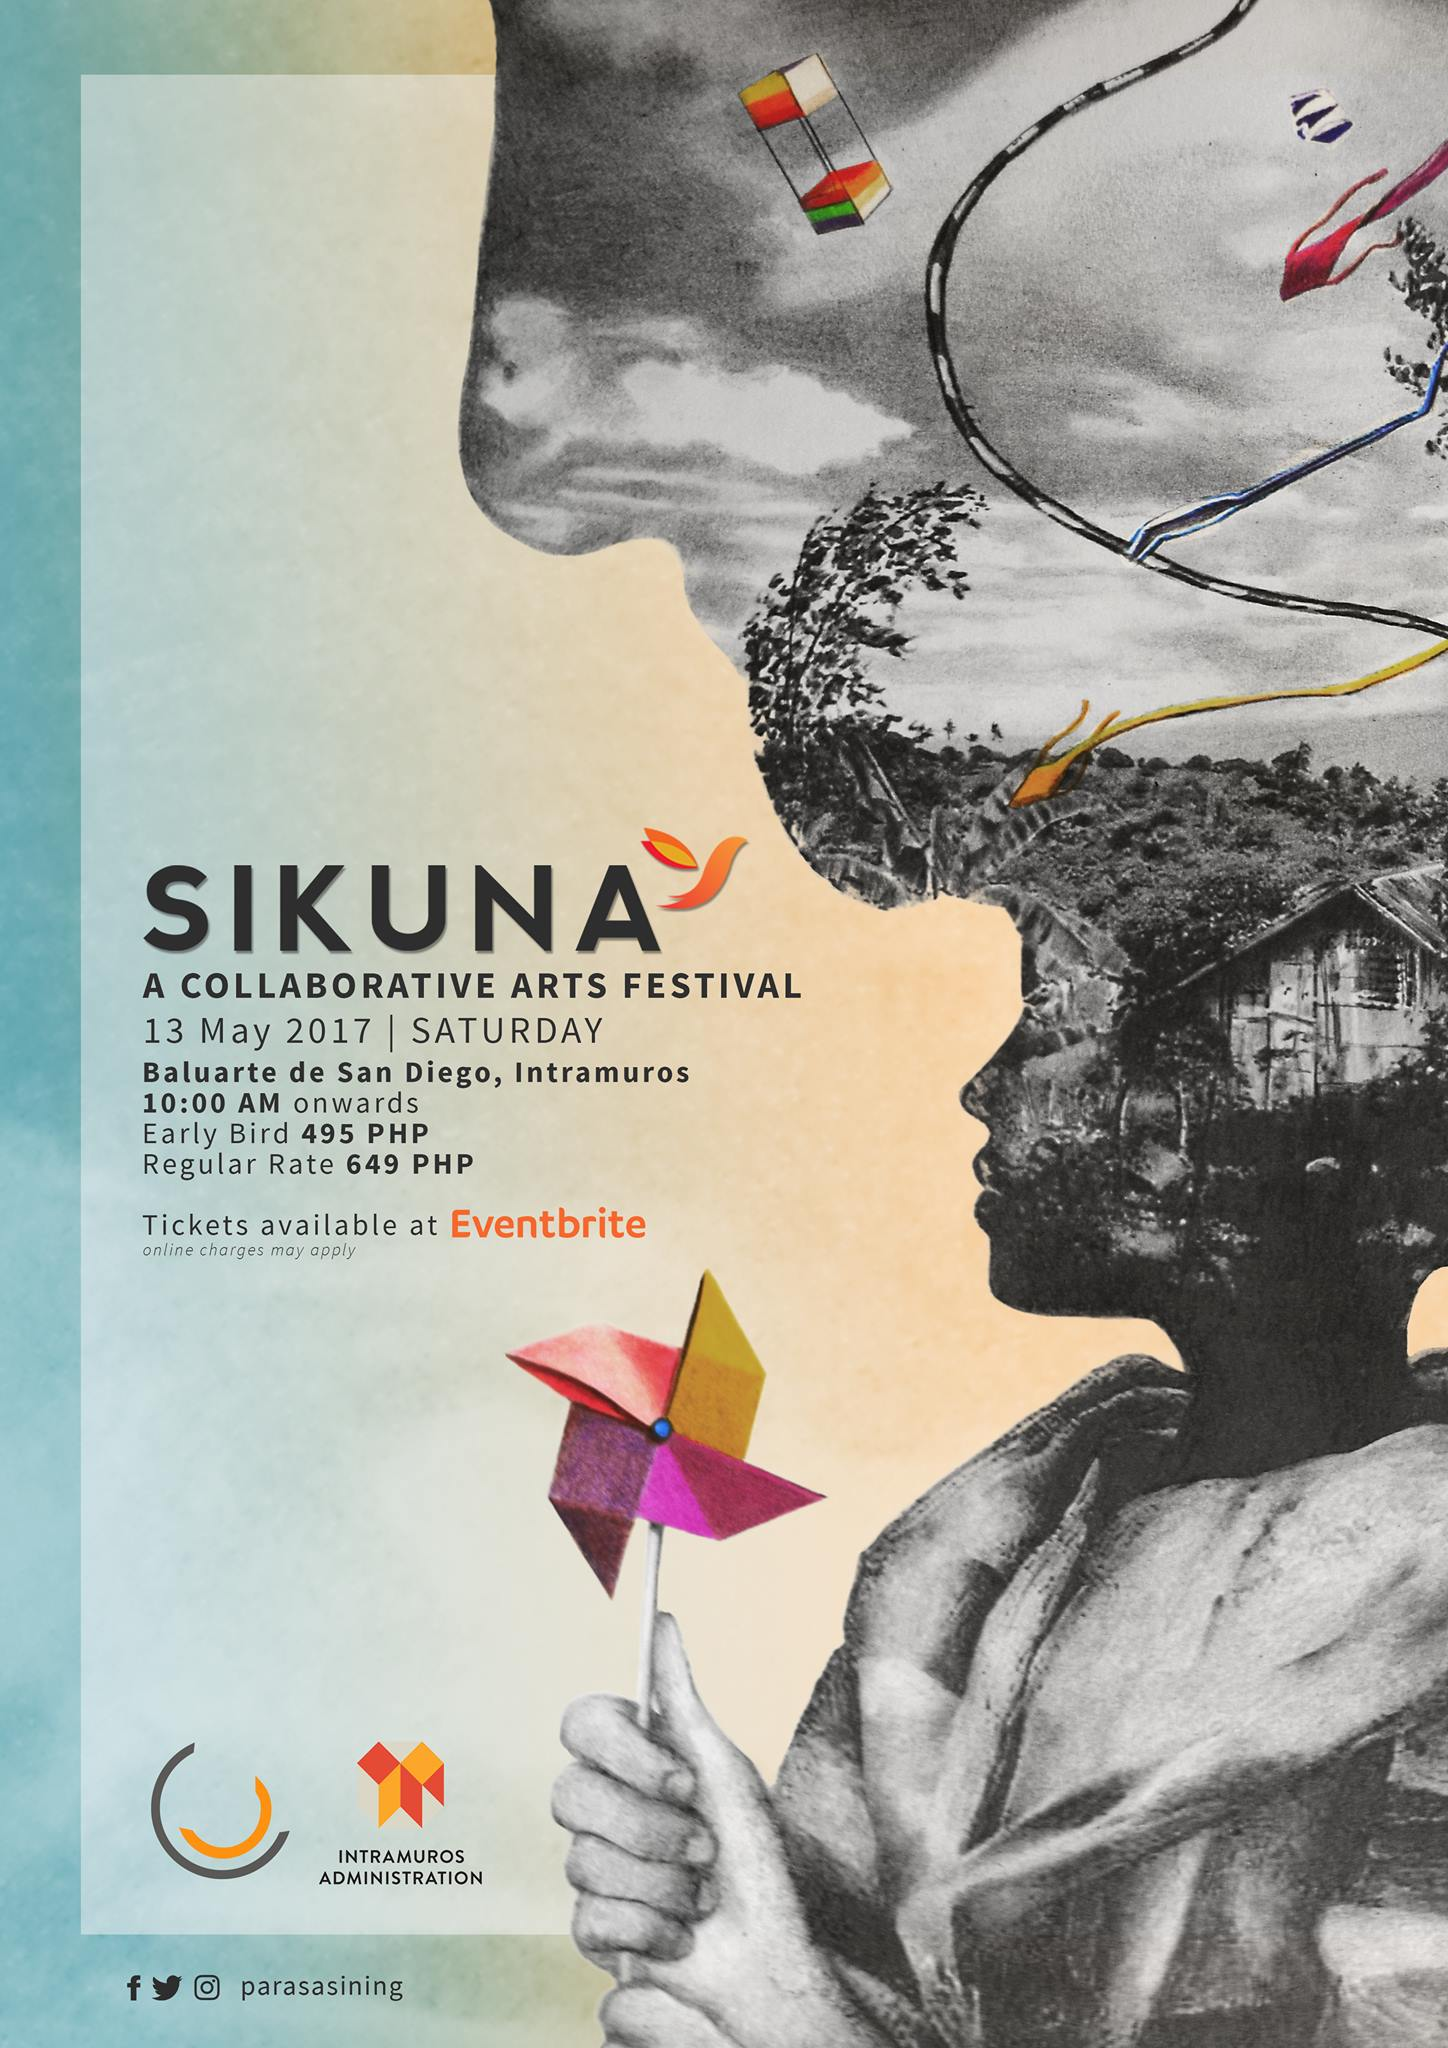 Sikuna Collaborative Arts Festival 2017 clock Tomorrow at 10 AM - 11 PM Tomorrow · 27–38° Partly Cloudy pin Show Map Intramuros, Manila ticket Find Tickets Tickets Available www.eventbrite.com About Discussion 135 Going · 615 InterestedSee All 4 Ja, Kace and 3 other friends are going Share Details SIKUNA (see-ku-nuh) is a Collaborative Arts Festival where different art forms are celebrated altogether! visual arts | literature | film | dance | music | architecture | theater The festival provides a platform where both artists and audiences experience the collaborative spirit through performances, workshops, open jams, and many other activities. While it aims to create an avenue where forms and genres merge, the Sikuna is the first festival of its kind in the Philippines. SIKUNA 2017 is the culminating event of the 2nd official season of Para Sa Sining. Through this Collaborative Arts Festival, we celebrate another year of art and of life! EVENT DETAILS 13 May 2017 | Saturday Baluarte de San Diego, Intramuros Gates open at 10AM TICKET DETAILS Early Bird (until April 30) - 495 Php Regular Rate - 649 Php Tickets are available through Eventbrite! online charges may apply EVENT DESCRIPTION Marrying two words to give birth to the festival name, Sikuna aims to resemble a cradle—- protecting the traditional genres while being a birthplace for the contemporary. The festival was launched in August 2015. It served as the opening festival of the first official season of Para Sa Sining. Having over 20 performances from around 150 artists and volunteers, it was a full day of collaborative performances, open jams, interactive performances, exhibitions, and an artisans' fair. This 2017, Sikuna will showcase more performances and activities in different venue spaces within the walls of the Baluarte de San Diego, Intramuros! Sikuna is a fundraising project for Para Sa Sining's upcoming projects such as the Hiraya Collaborative Arts Educa